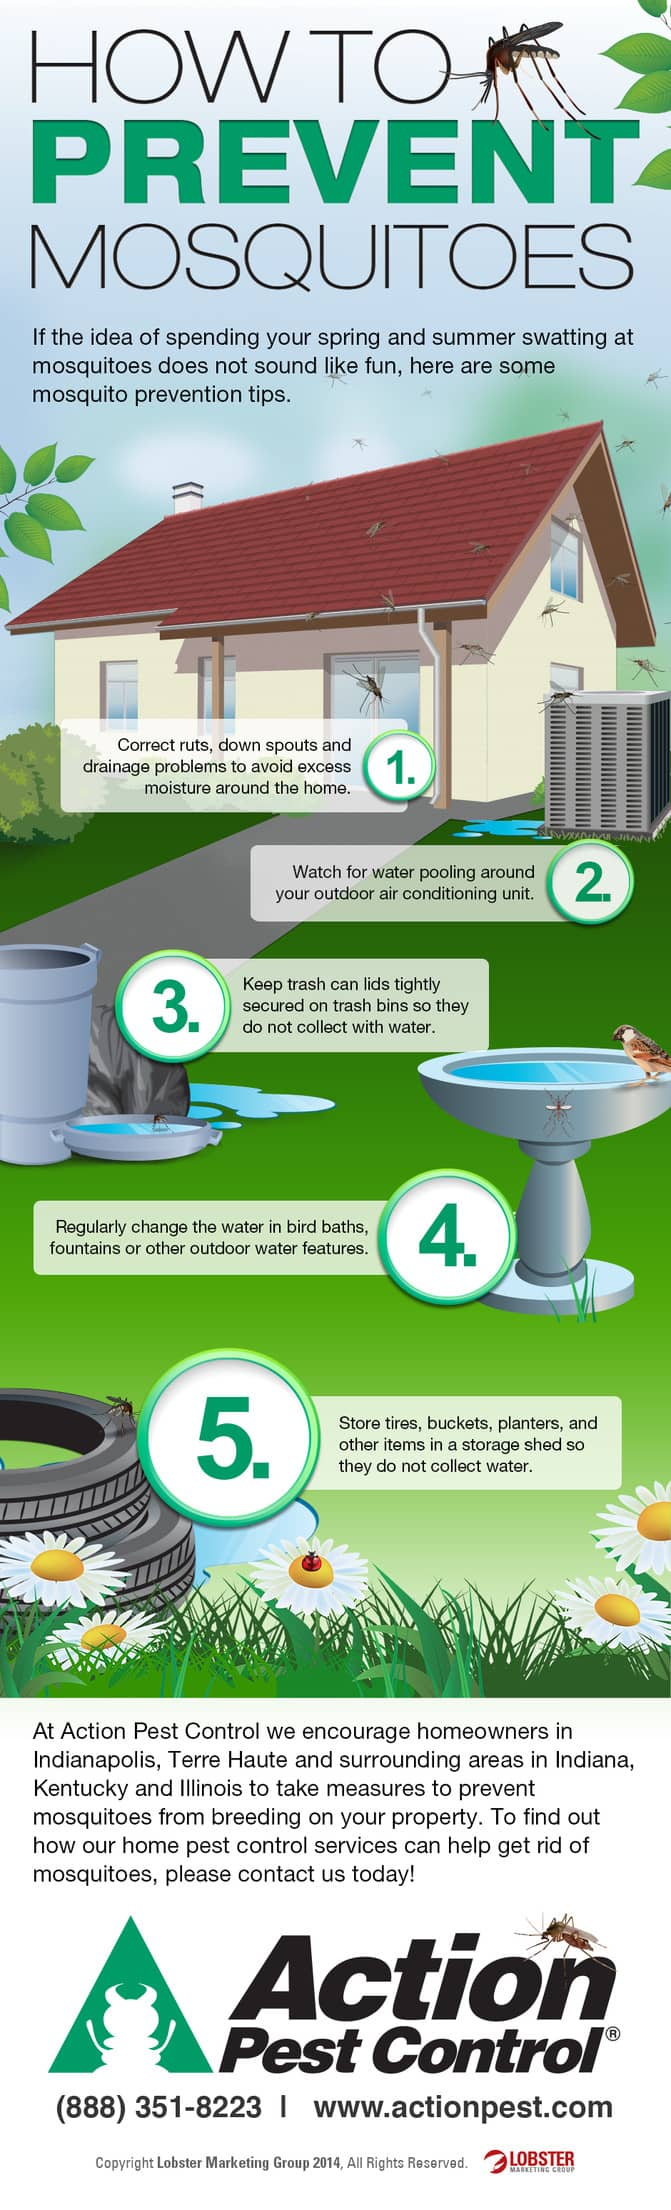 how to prevent mosquitoes this year infographic